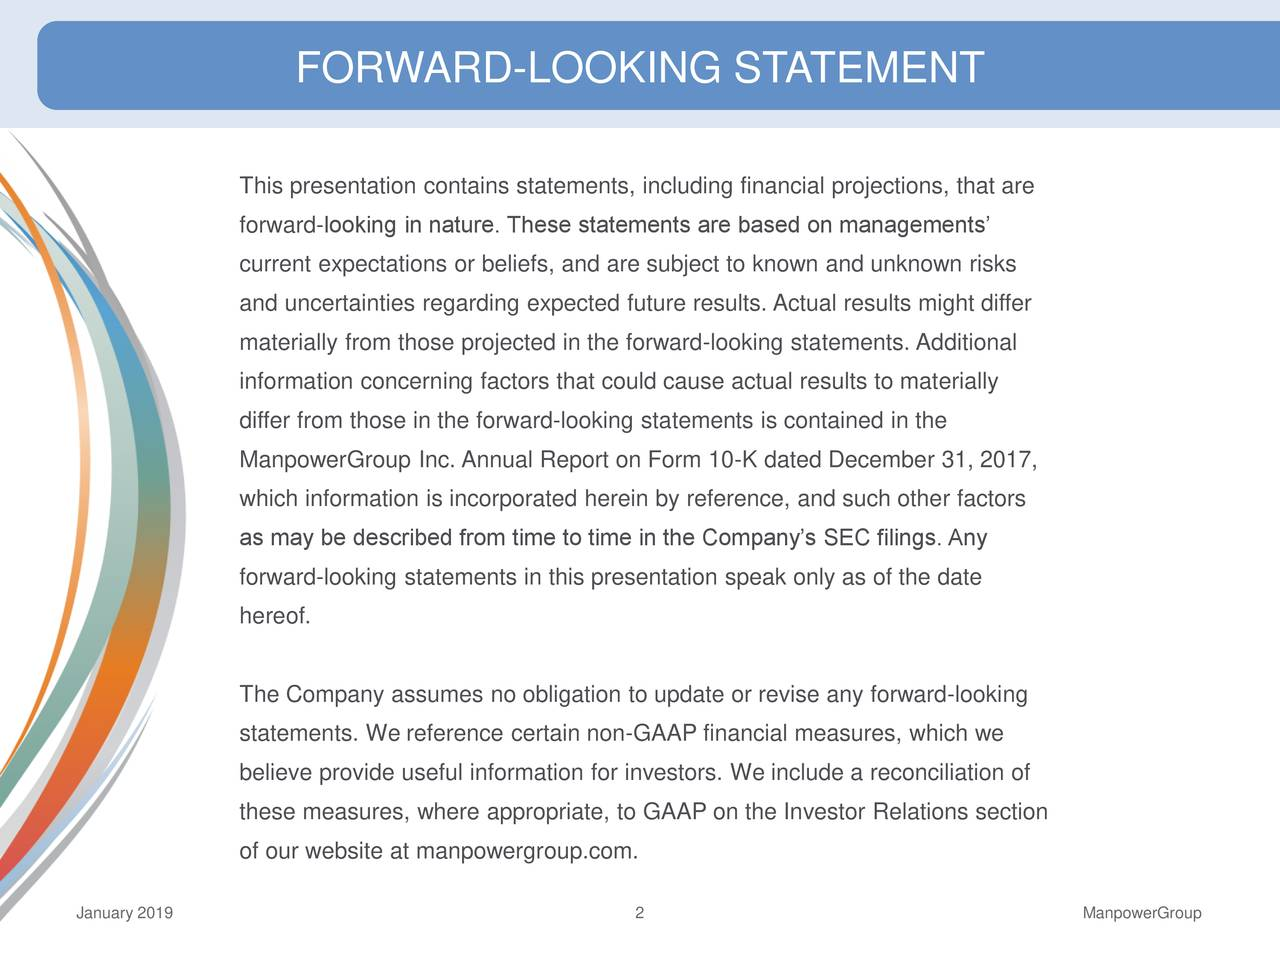 FORWARD-LOOKING STATEMENT This presentation contains statements, including financial projections, that are forward-looking in nature. These statements are based on managements' current expectations or beliefs, and are subject to known and unknown risks and uncertainties regarding expected future results. Actual results might differ materially from those projected in the forward-looking statements. Additional information concerning factors that could cause actual results to materially differ from those in the forward-looking statements is contained in the ManpowerGroup Inc. Annual Report on Form 10-K dated December 31, 2017, which information is incorporated herein by reference, and such other factors as may be described from time to time in the Company's SEC filings. Any forward-looking statements in this presentation speak only as of the date hereof. The Company assumes no obligation to update or revise any forward-looking statements. We reference certain non-GAAP financial measures, which we believe provide useful information for investors. We include a reconciliation of these measures, where appropriate, to GAAP on the Investor Relations section of our website at manpowergroup.com. January 2019 2 ManpowerGroup